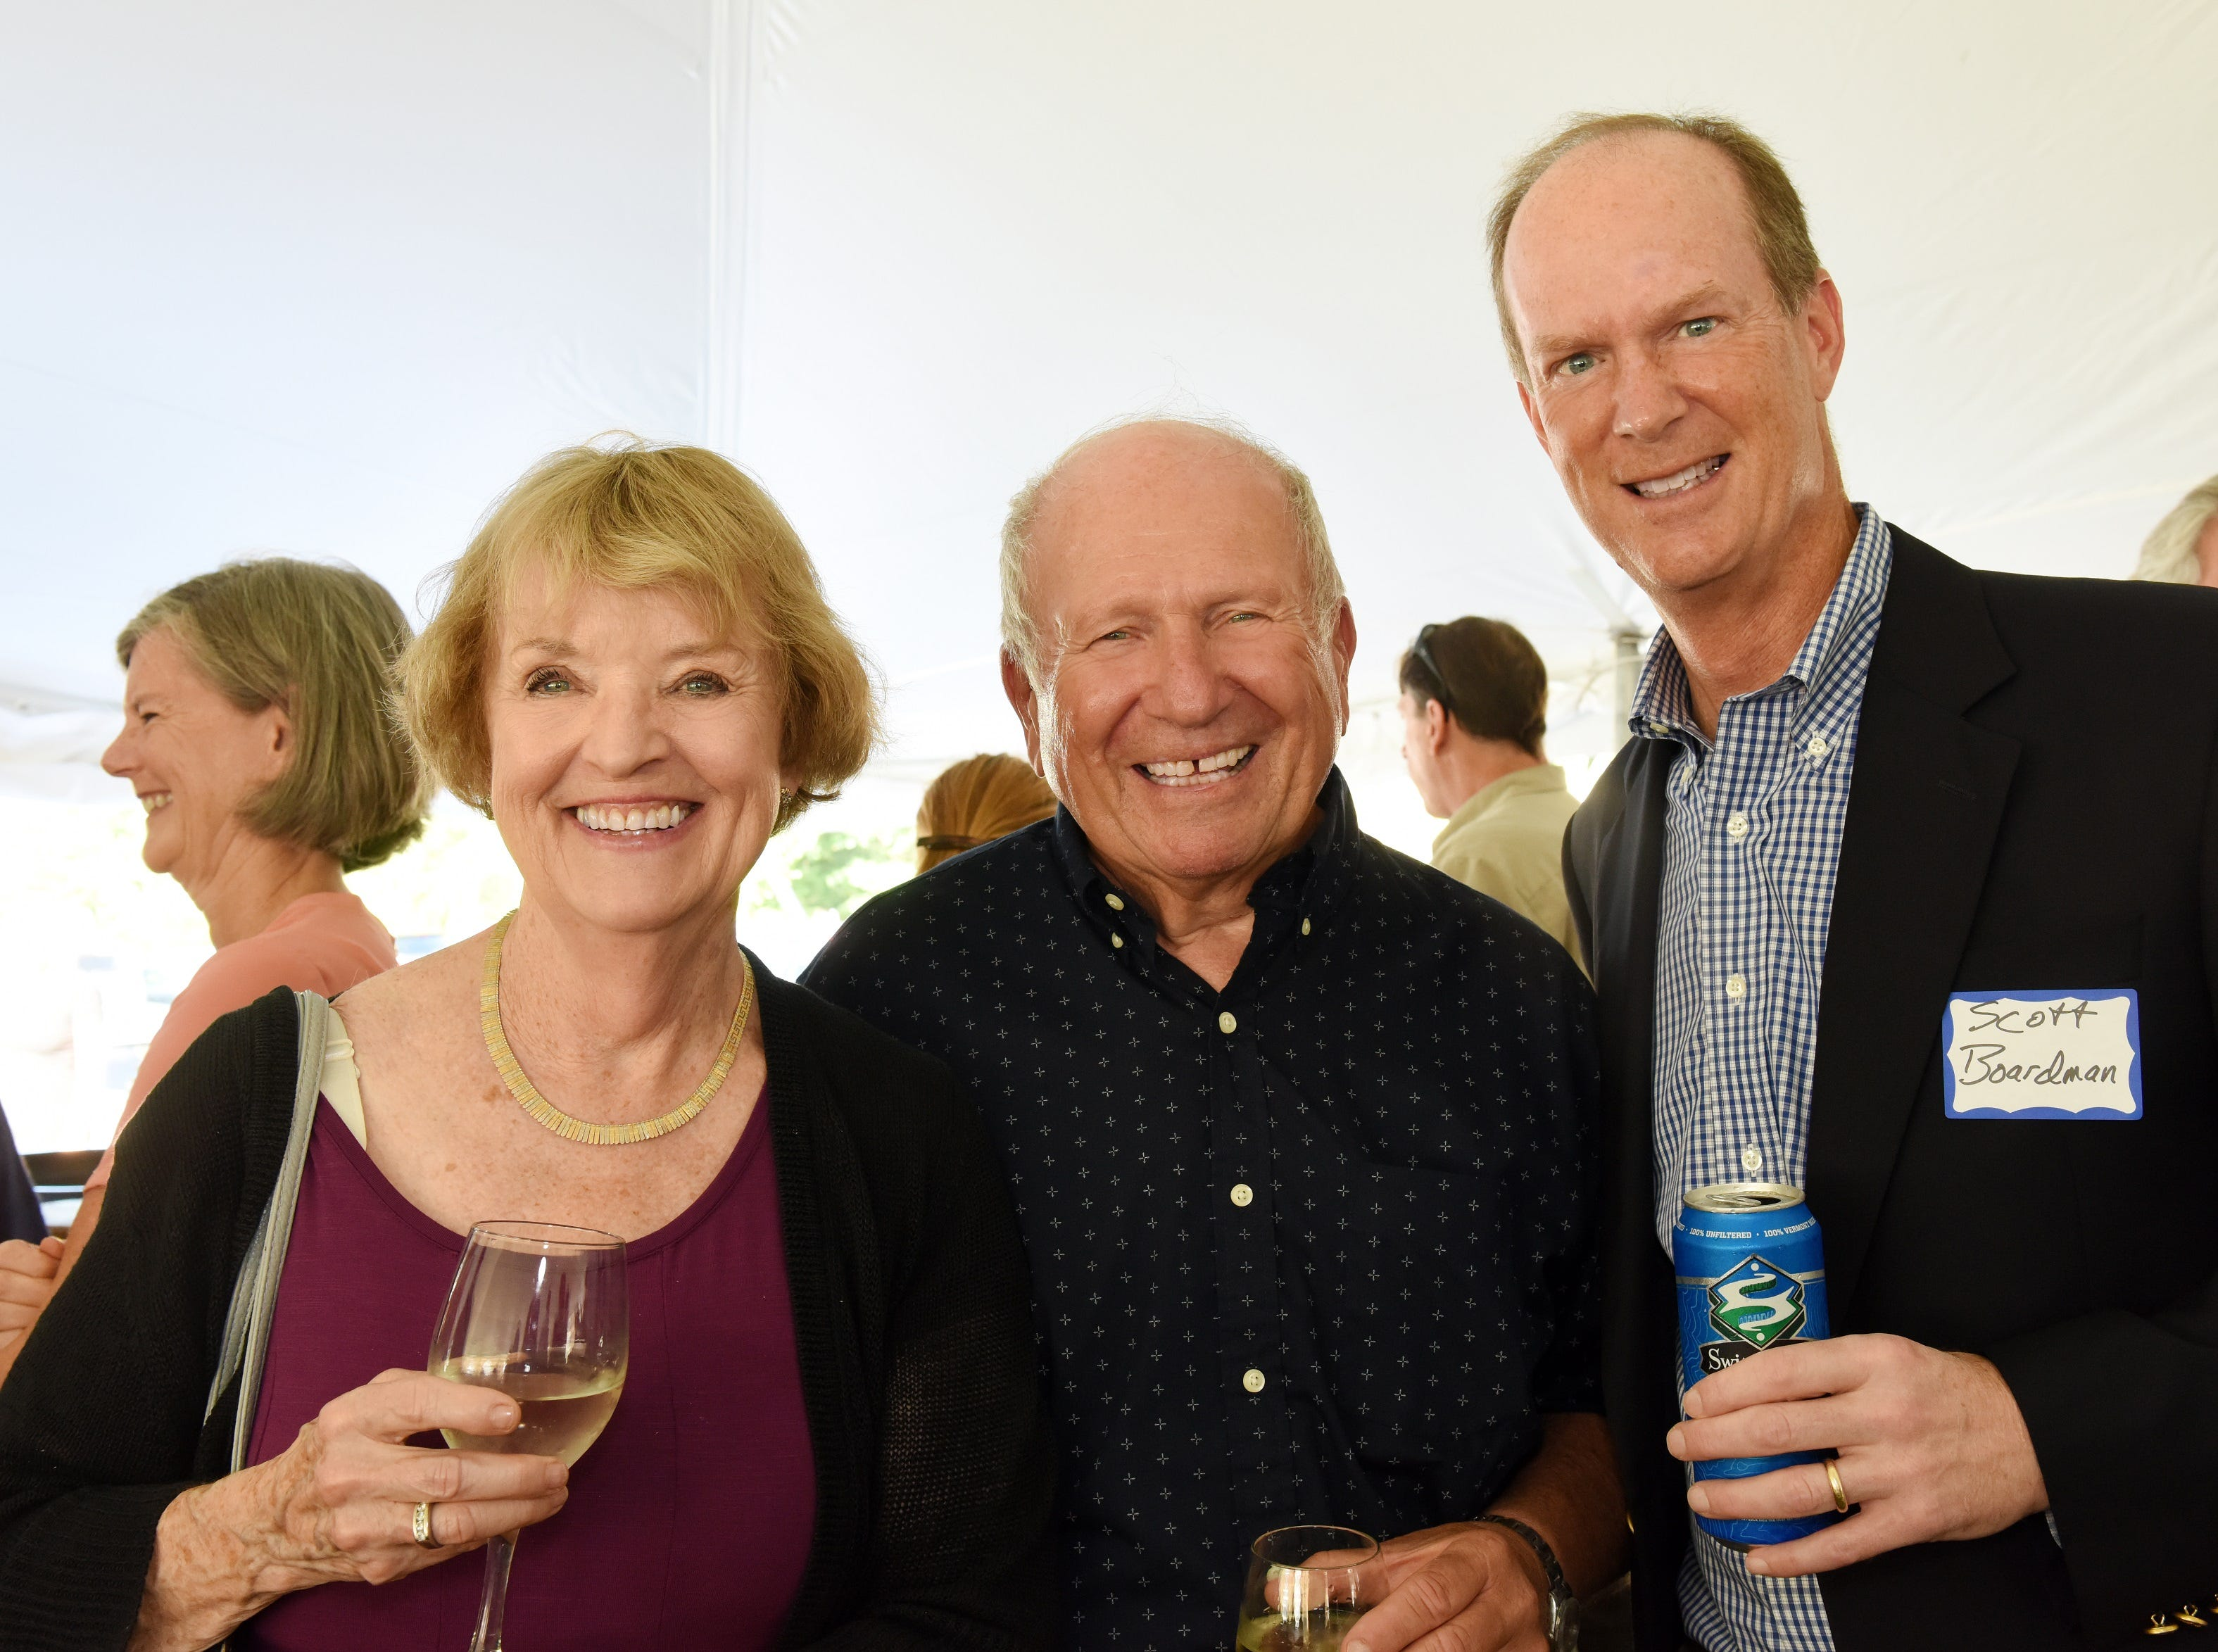 Maggie Burti and Gus Burti (retired from CBHB) with Scott Boardman attend the Coldwell Banker Hickok & Boardman 60th Anniversary on September 13, 2018, with current and past agents and community leaders in Burlington, VT.